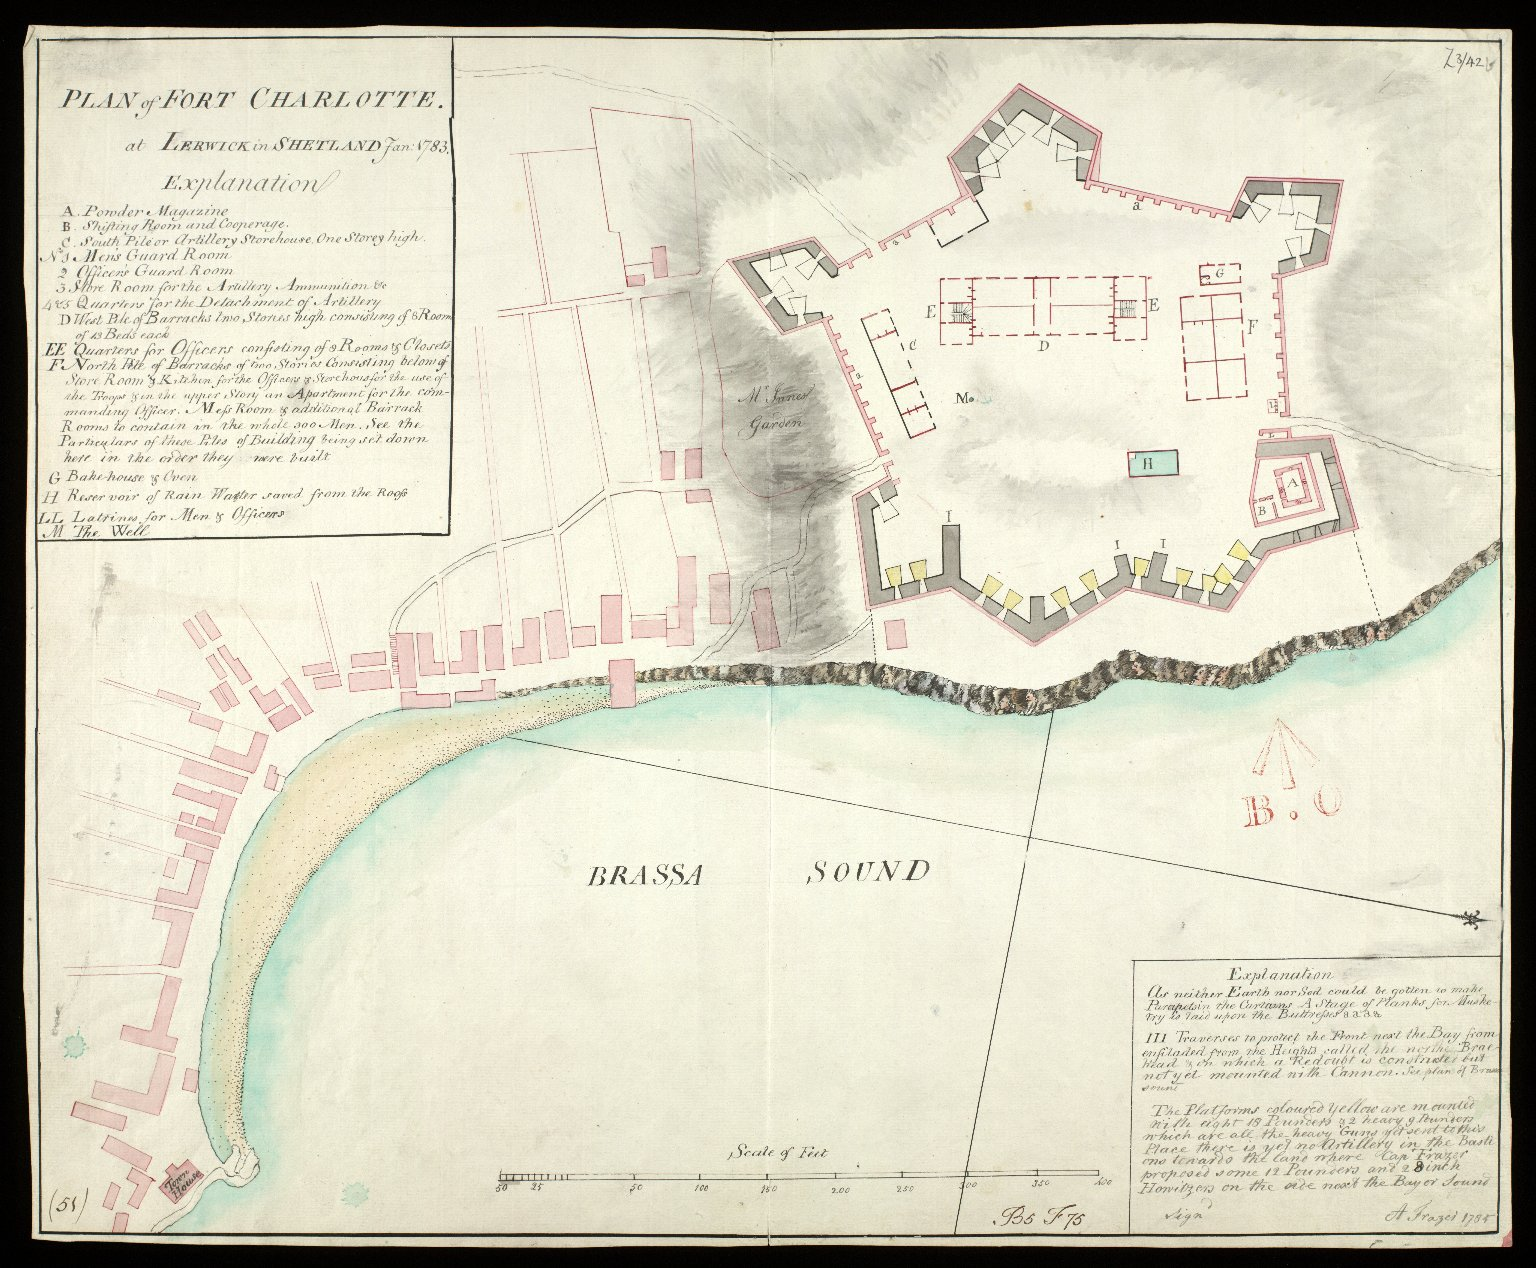 Plan of Fort Charlotte at Lerwick in Shetland Jan. 1783 [copy] [1 of 1]